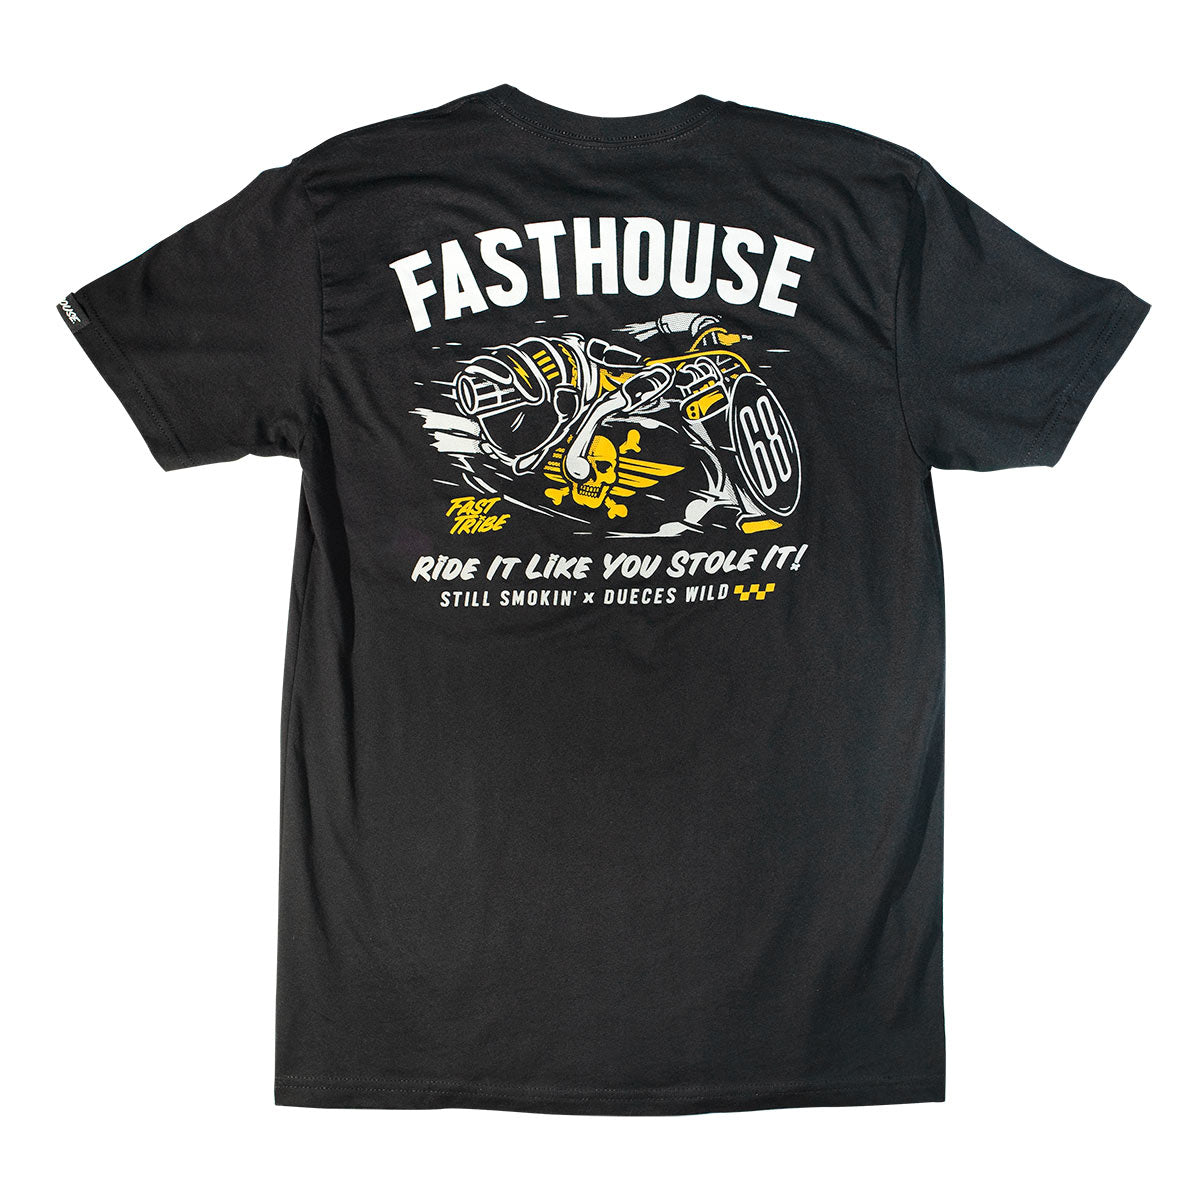 Fasthouse - Octane Tee - Black